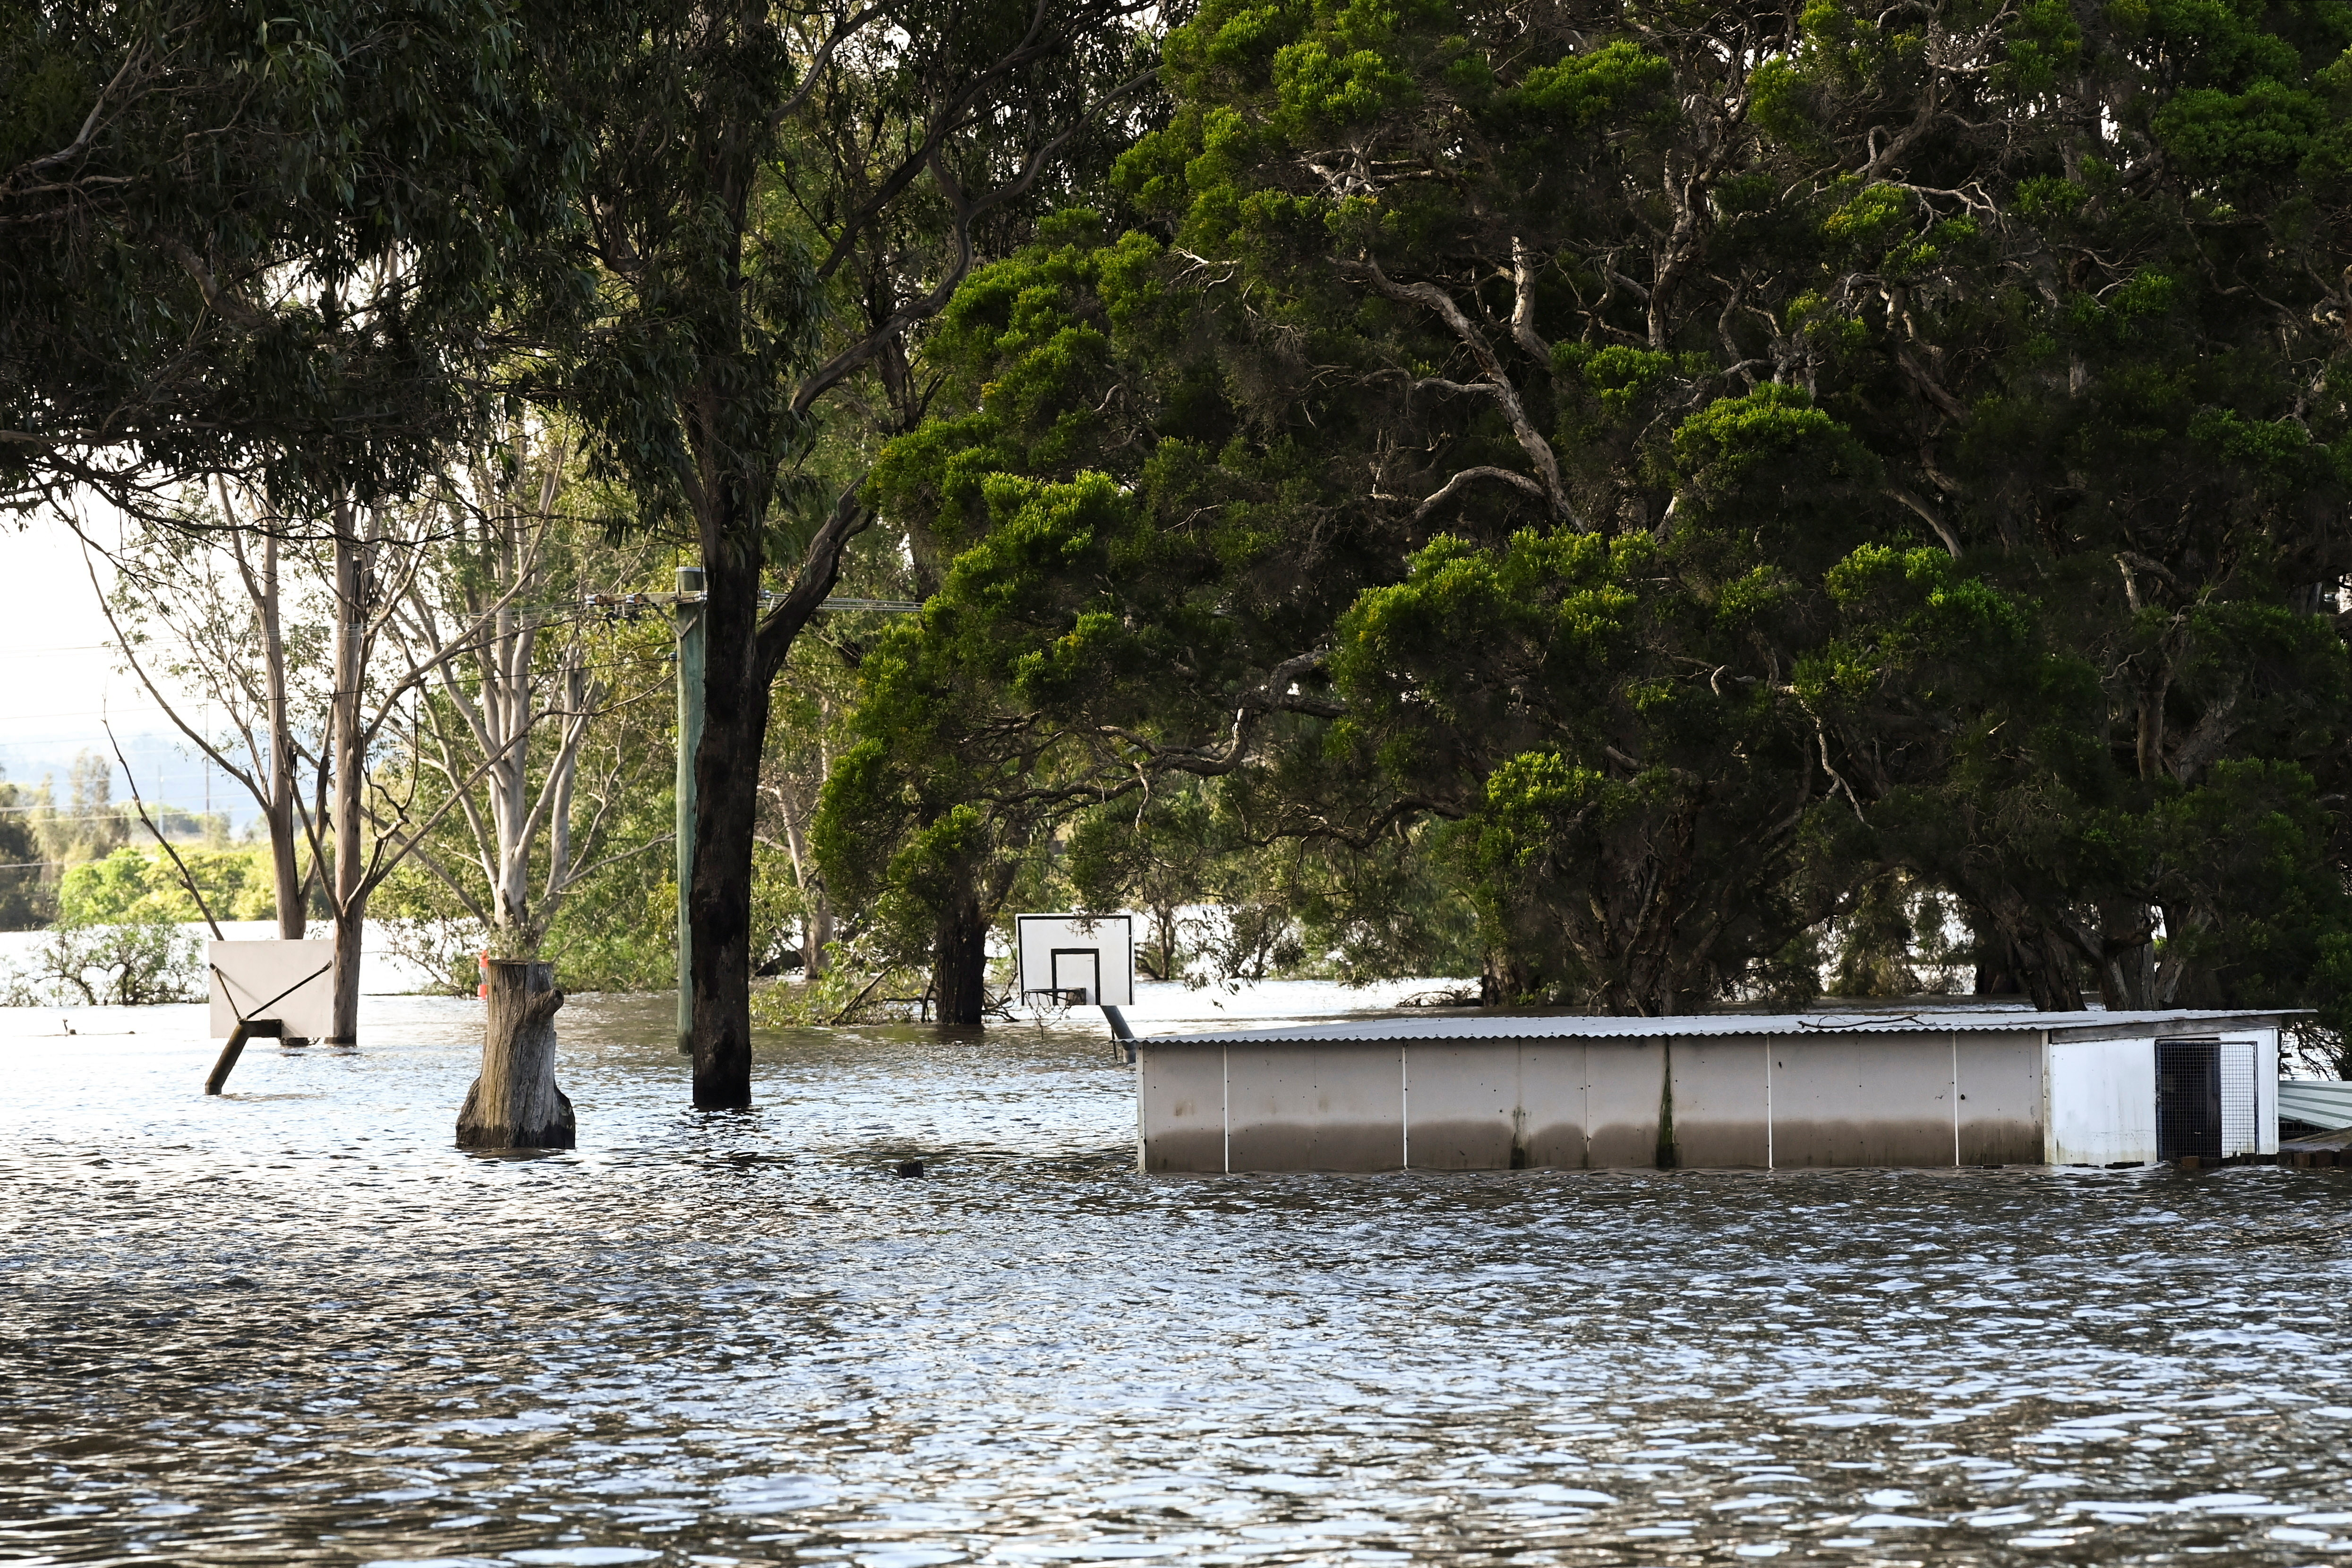 image of the severe flooding in New South Wales